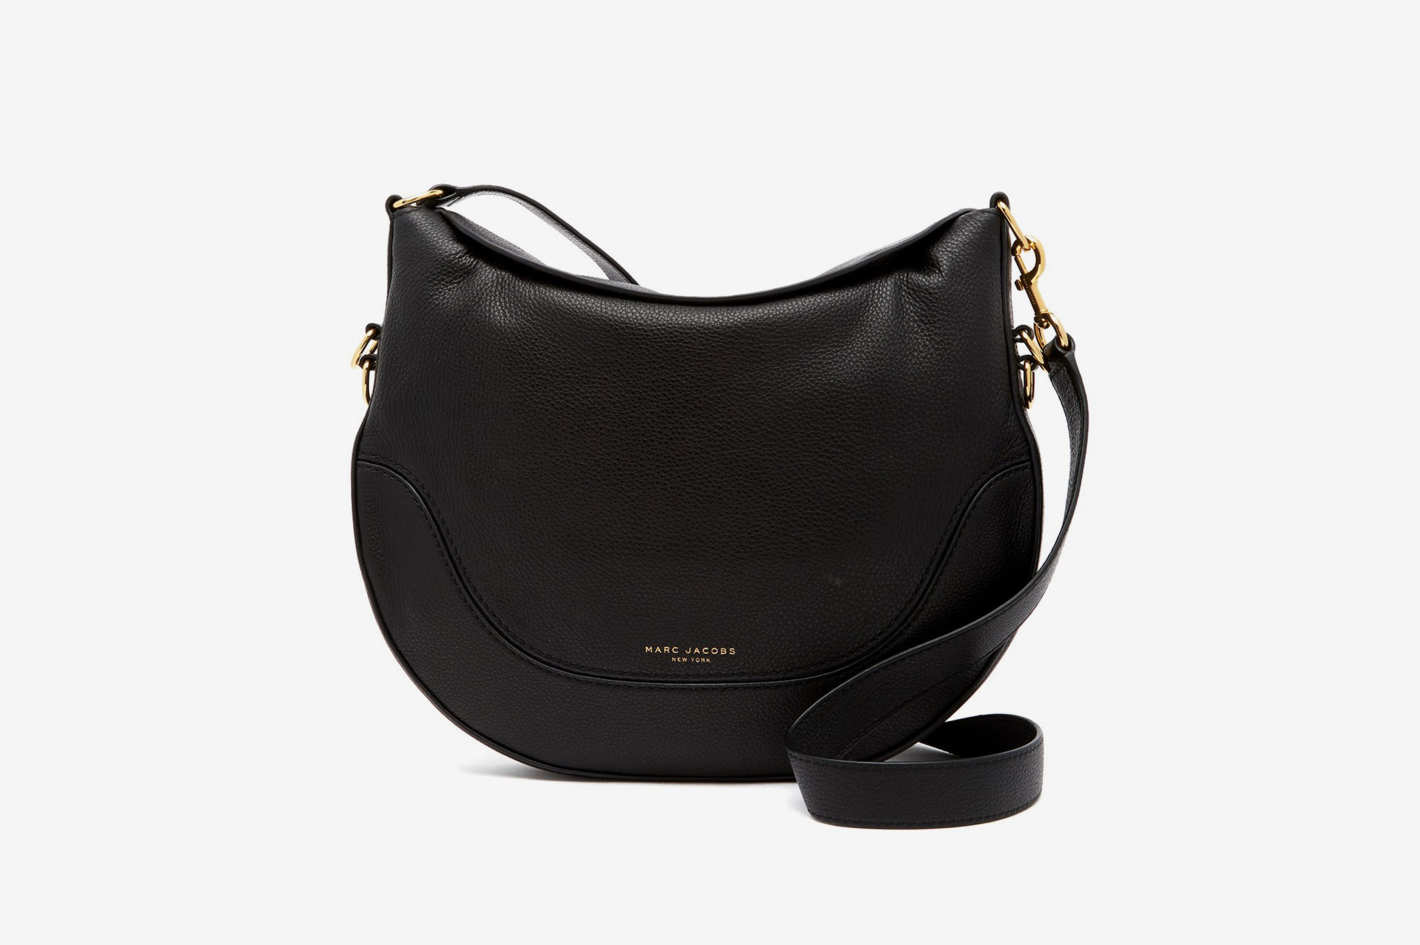 Marc Jacobs Drifter Leather Crossbody Bag